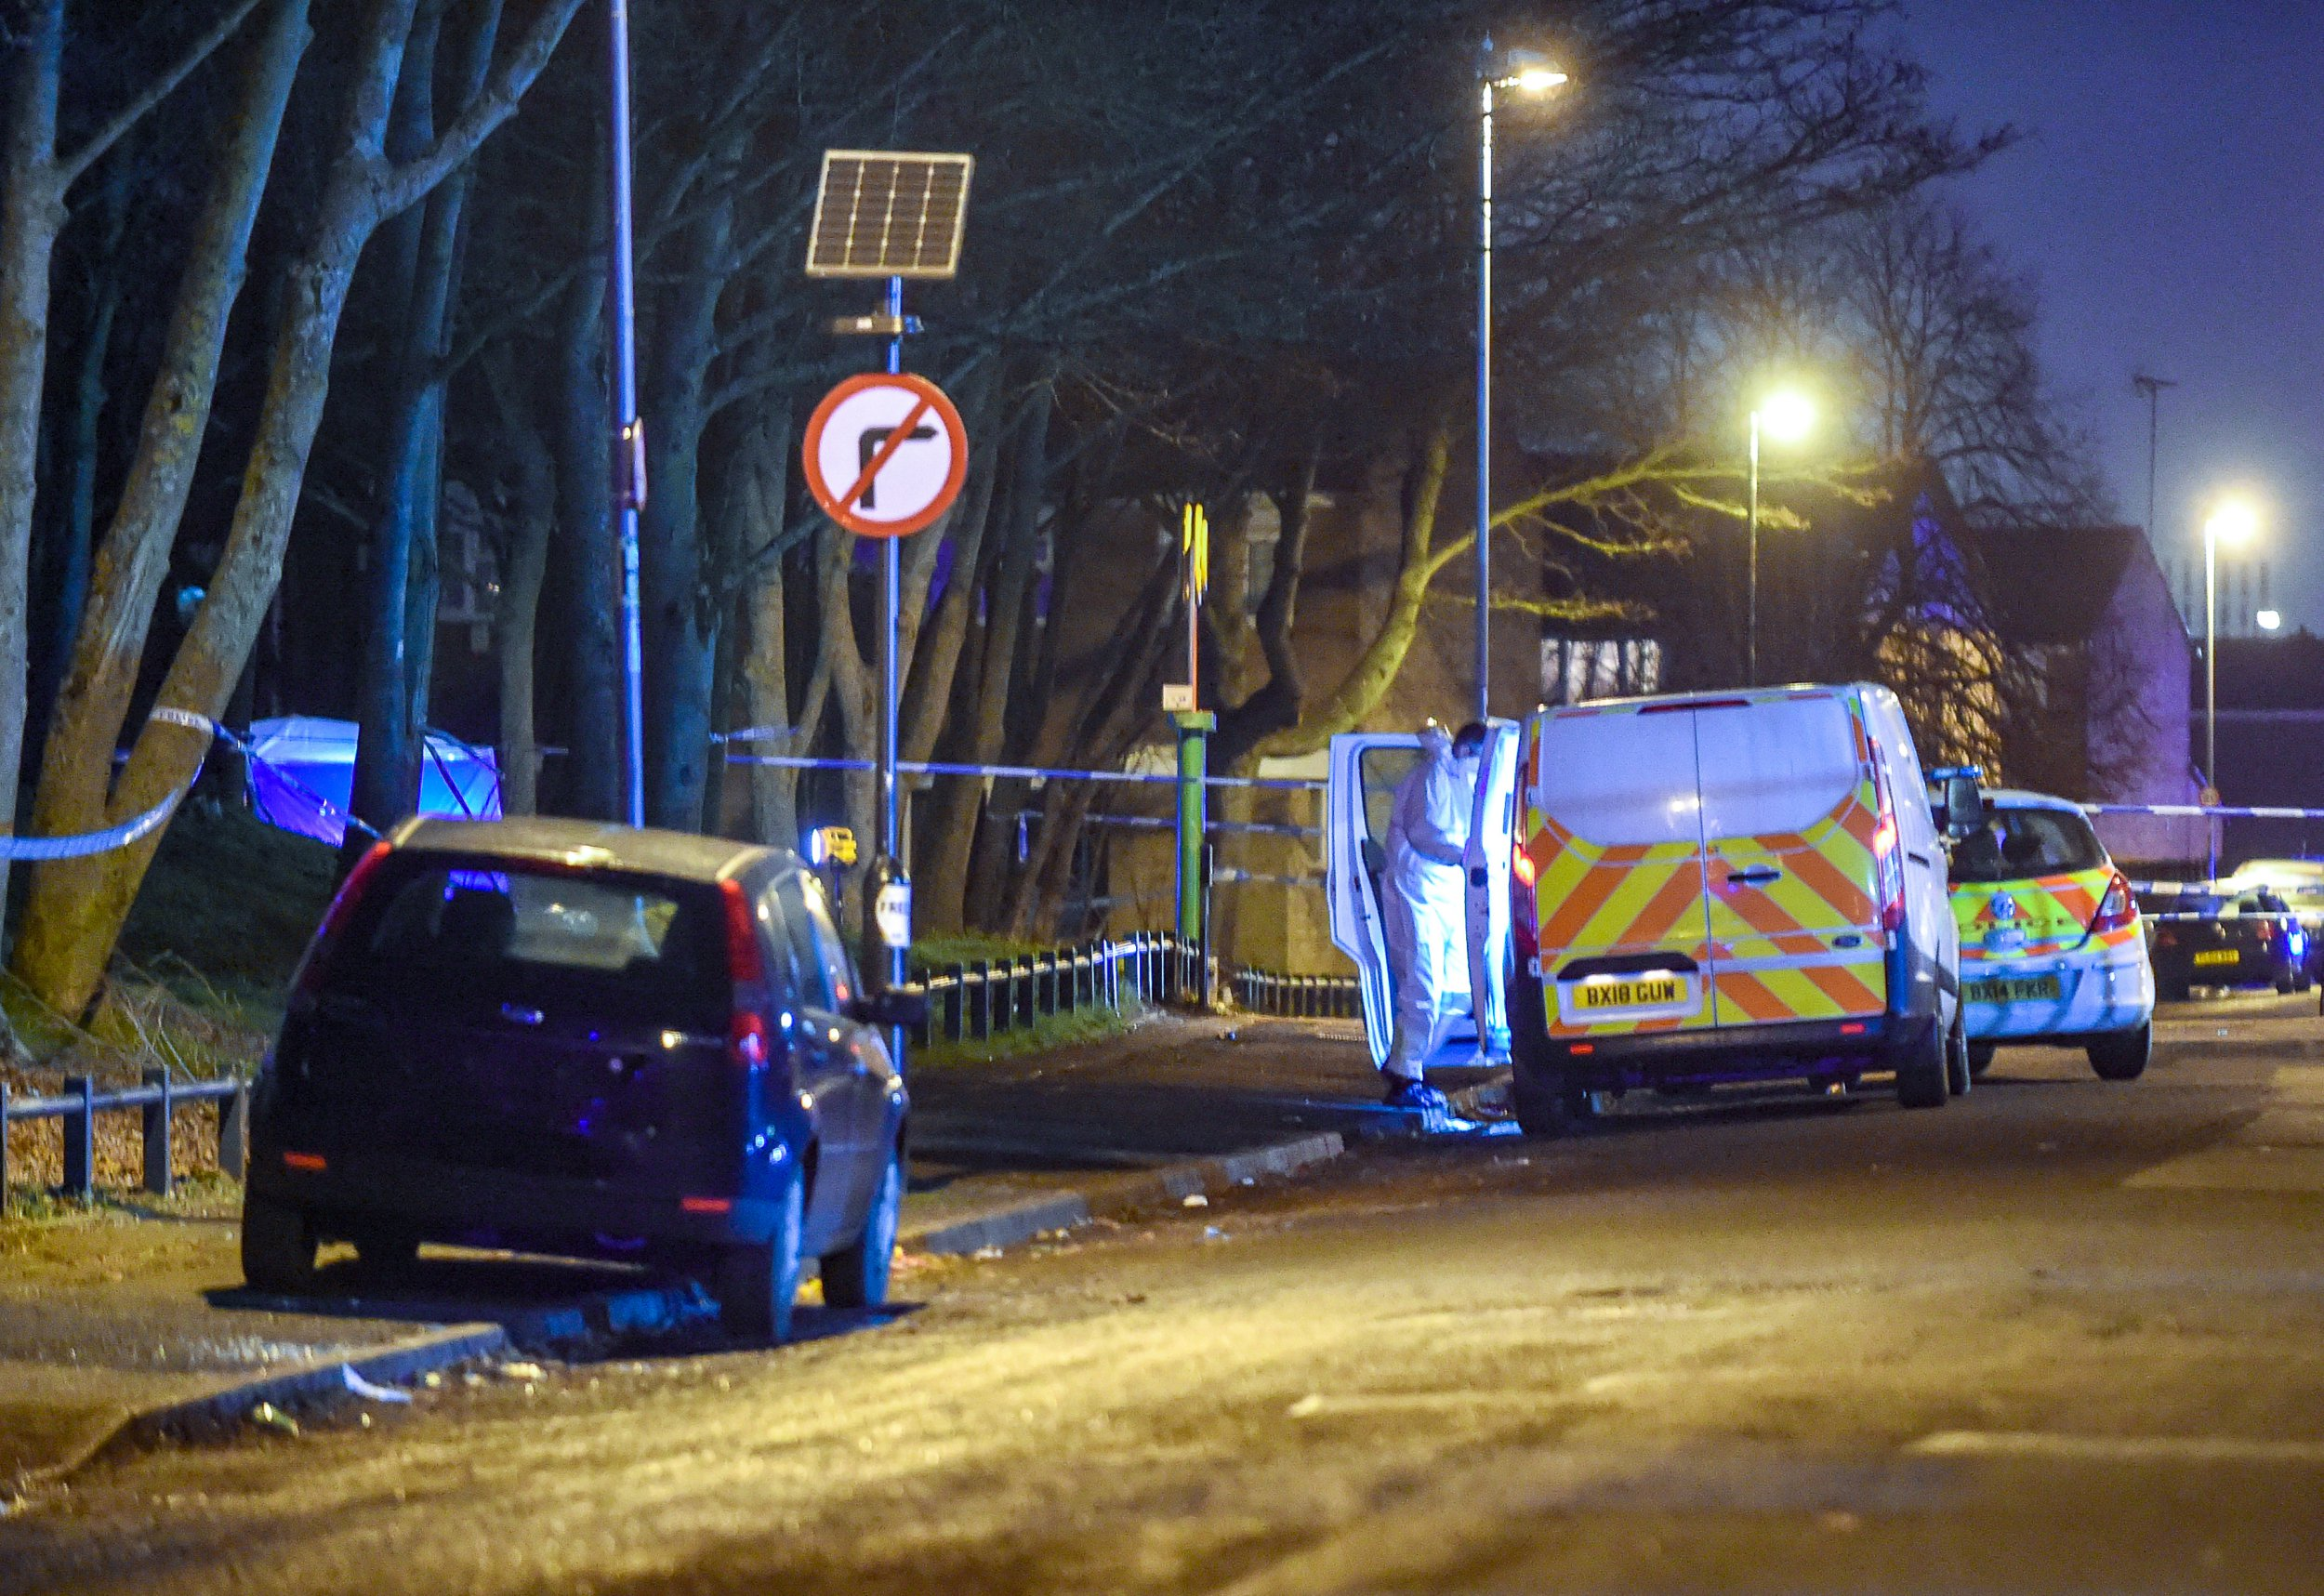 Pictured, 20/2/19 , 8pm West Midlands police launch a Murder investigation after a 17 year old male is stabbed in chest in local park. He died at the scene , Sara Park , Herbert Road , Small Heath , Birmingham , West Midlands.